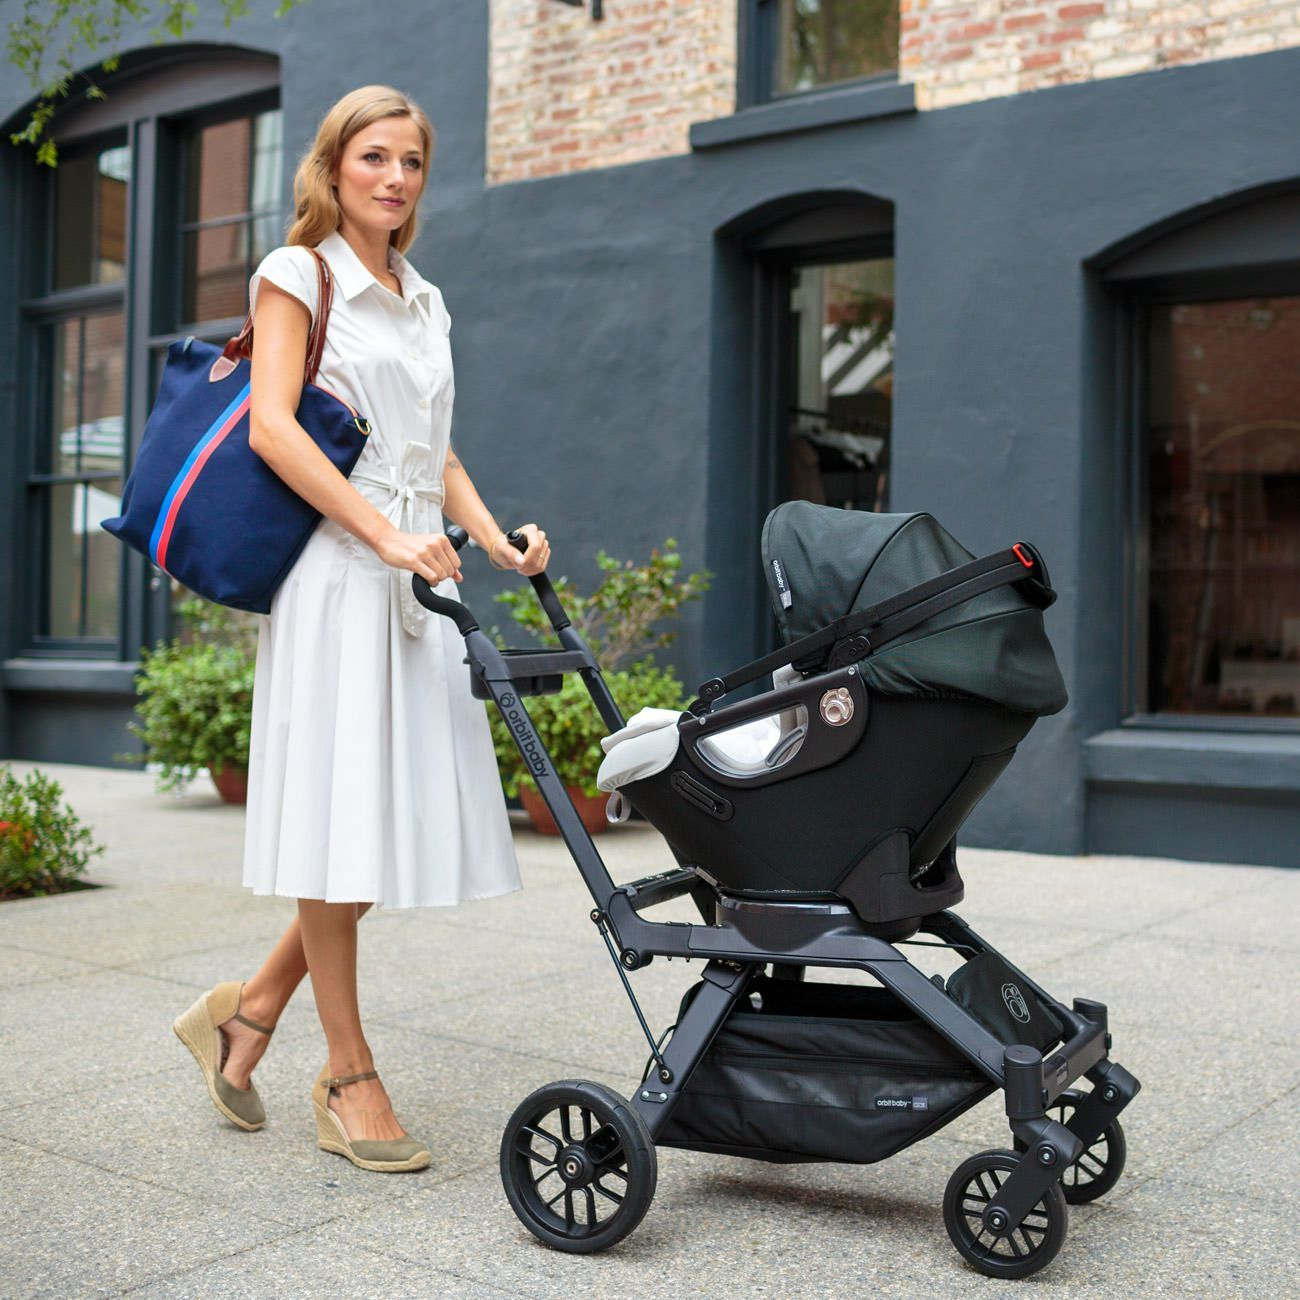 See why the Orbit g3 stroller and carseat are celebrity favorites ...